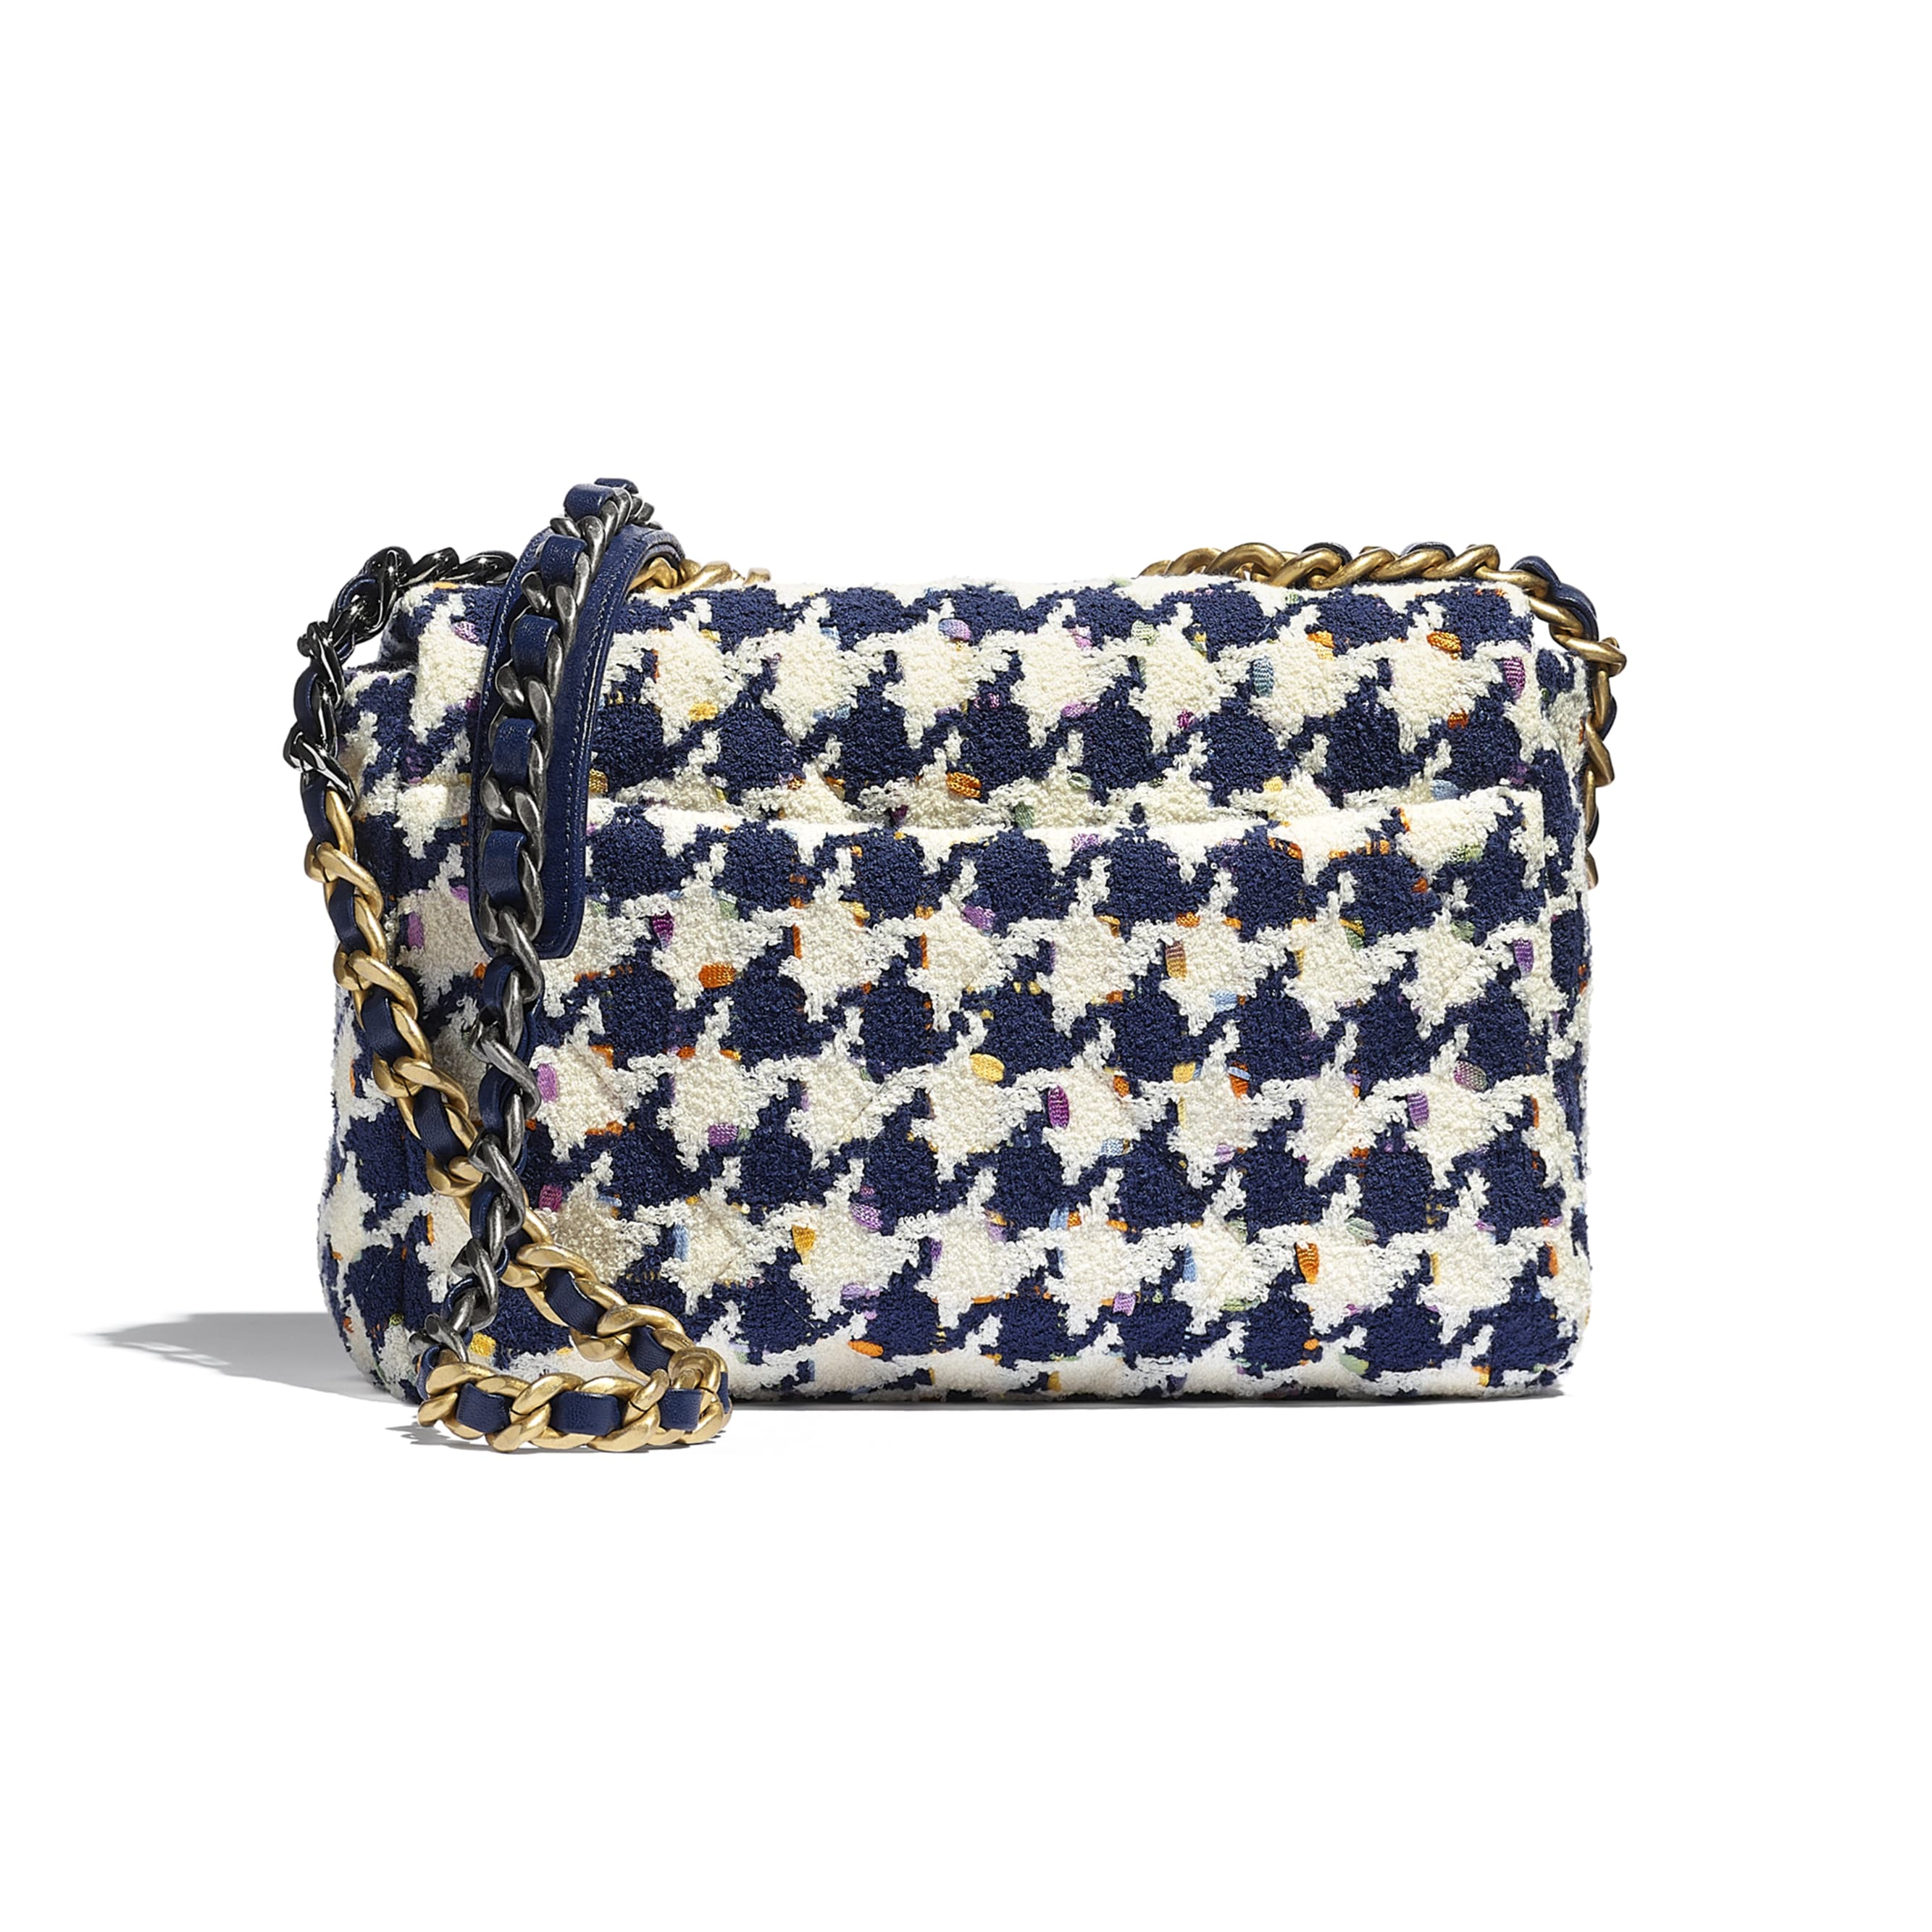 CHANEL 19 Flap Bag - Ecru, Navy Blue & Multicolour - Tweed, Gold-Tone, Silver-Tone & Ruthenium-Finish Metal - CHANEL - Alternative view - see standard sized version